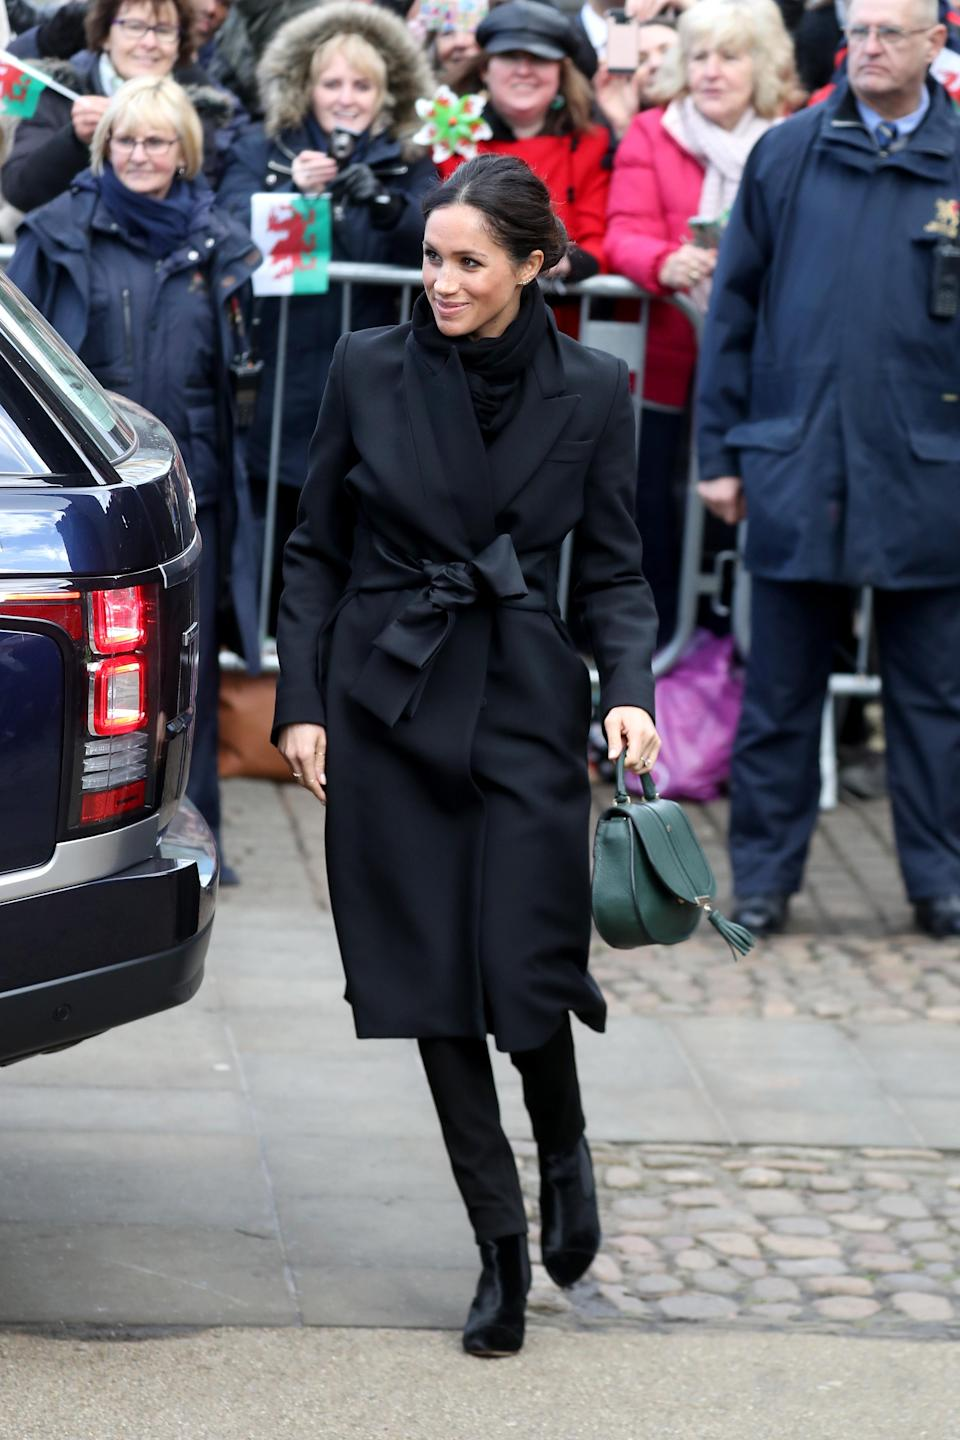 <p>To mark her first offical trip to Cardiff, Meghan Markle chose a pair of trousers by Welsh brand Hiut Denim. She finished the all-black ensemble with a satin-bow Stella McCartney coat and a forest green bag by DeMellier. <em>[Photo: Getty]</em> </p>